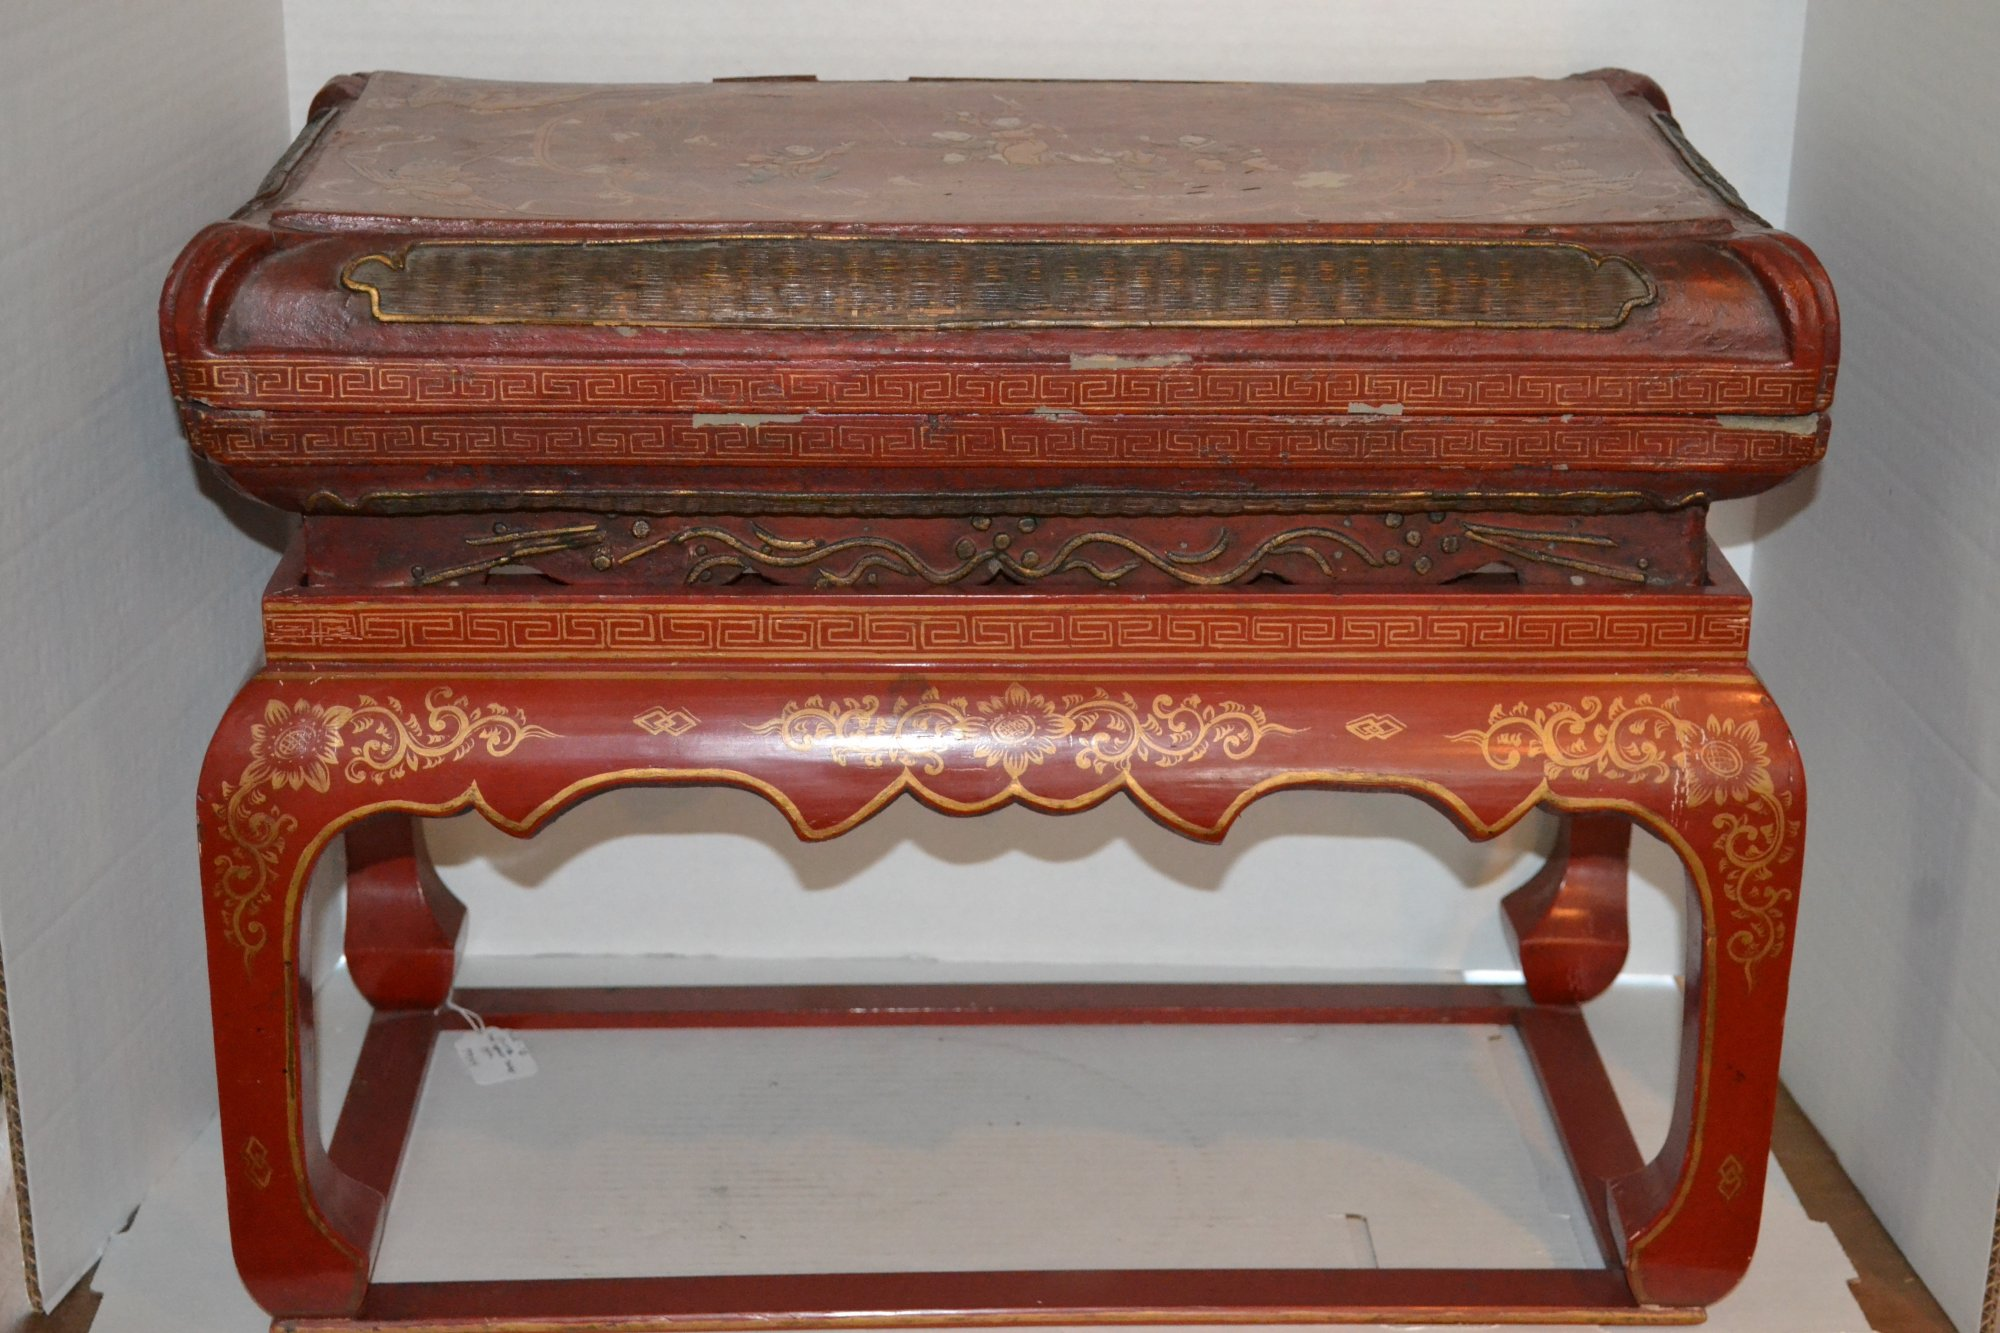 20th Century Chinese Red Lacquer Table w/ stretcher (Food server) H. 21 X W. 23 X 10